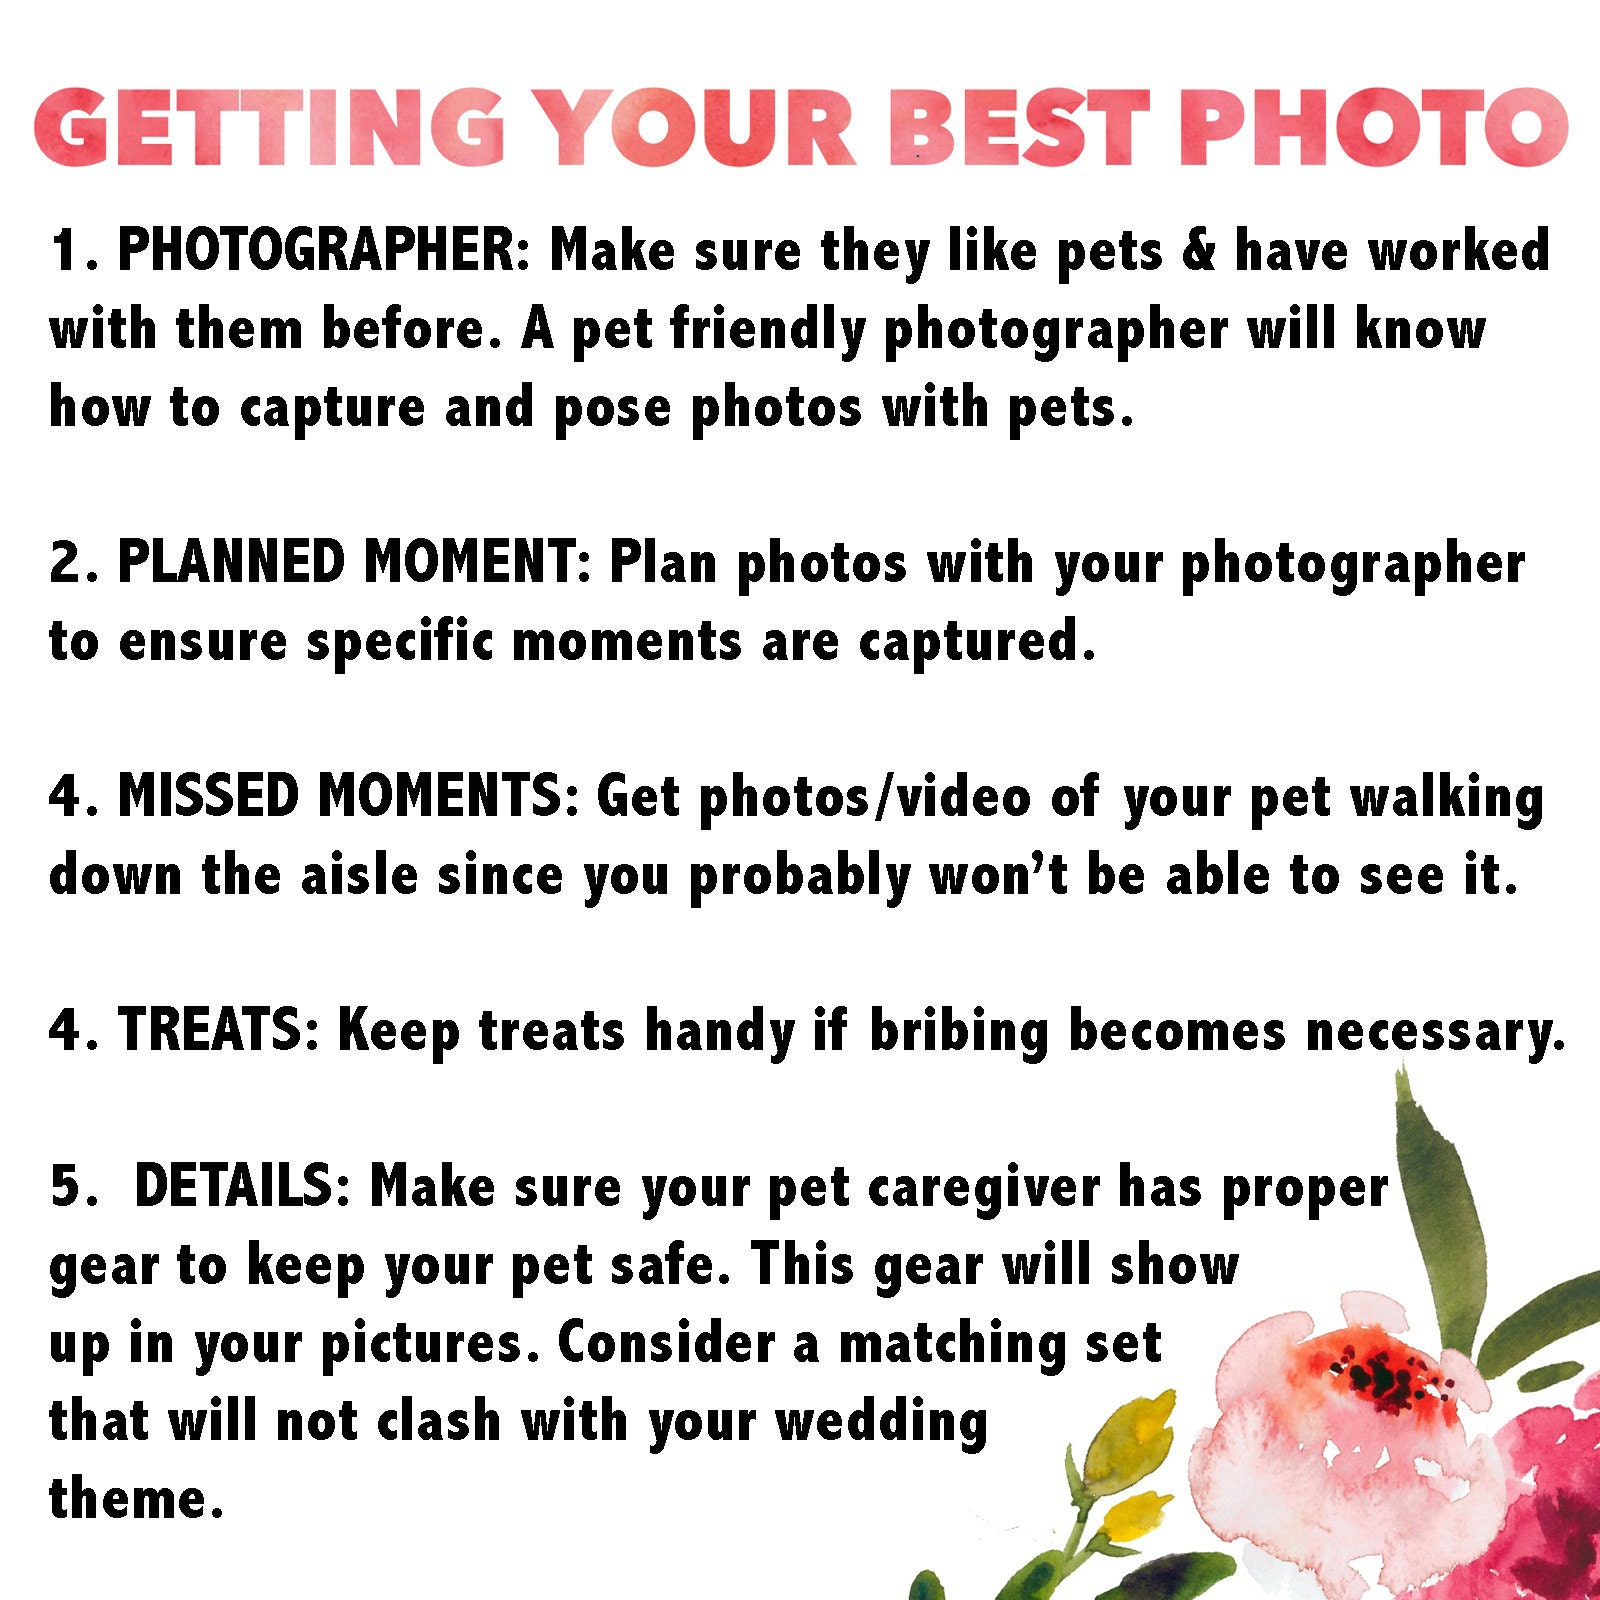 Getting Your Best Photo